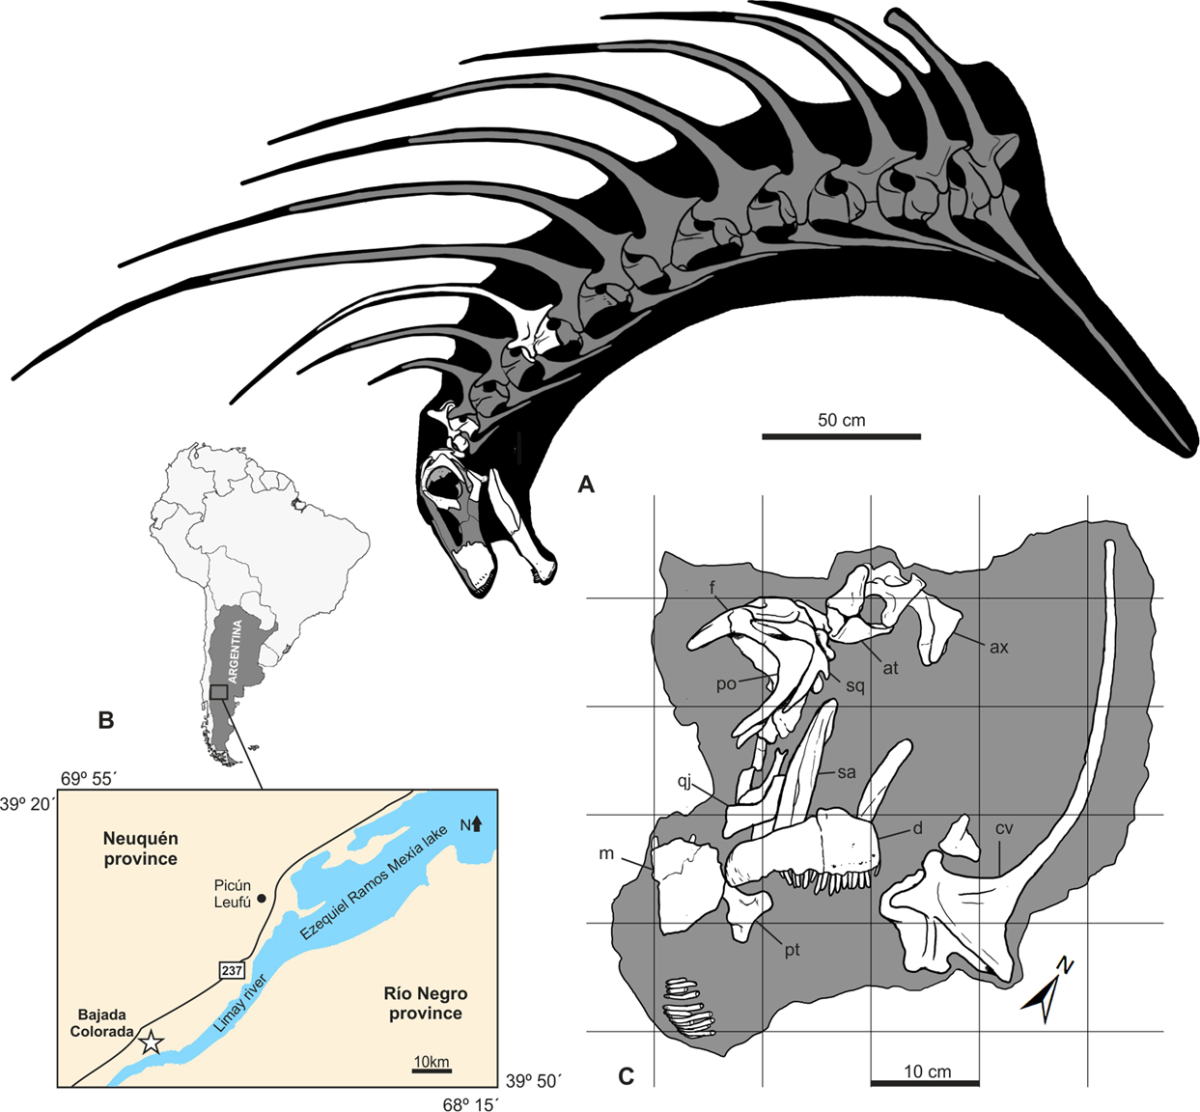 Bajadasaurus' place of discovery, projected head and neck anatomy, and known remains (in white).